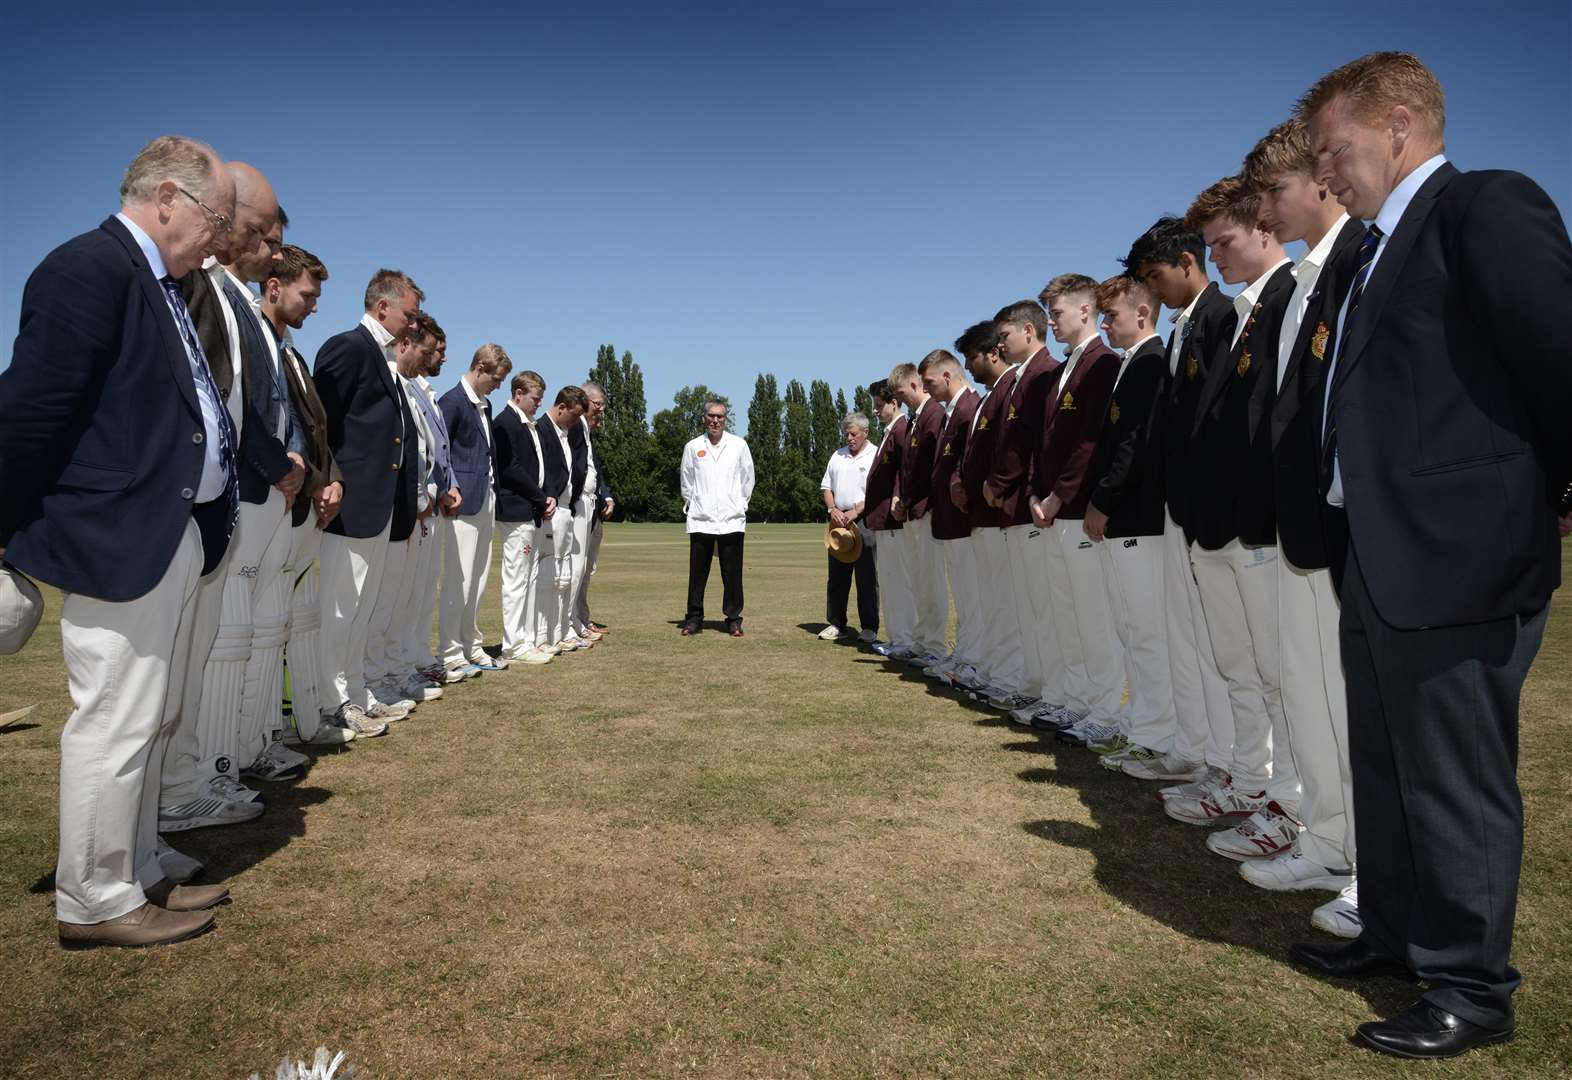 Grantham school's cricket fixture is tinged with sadness